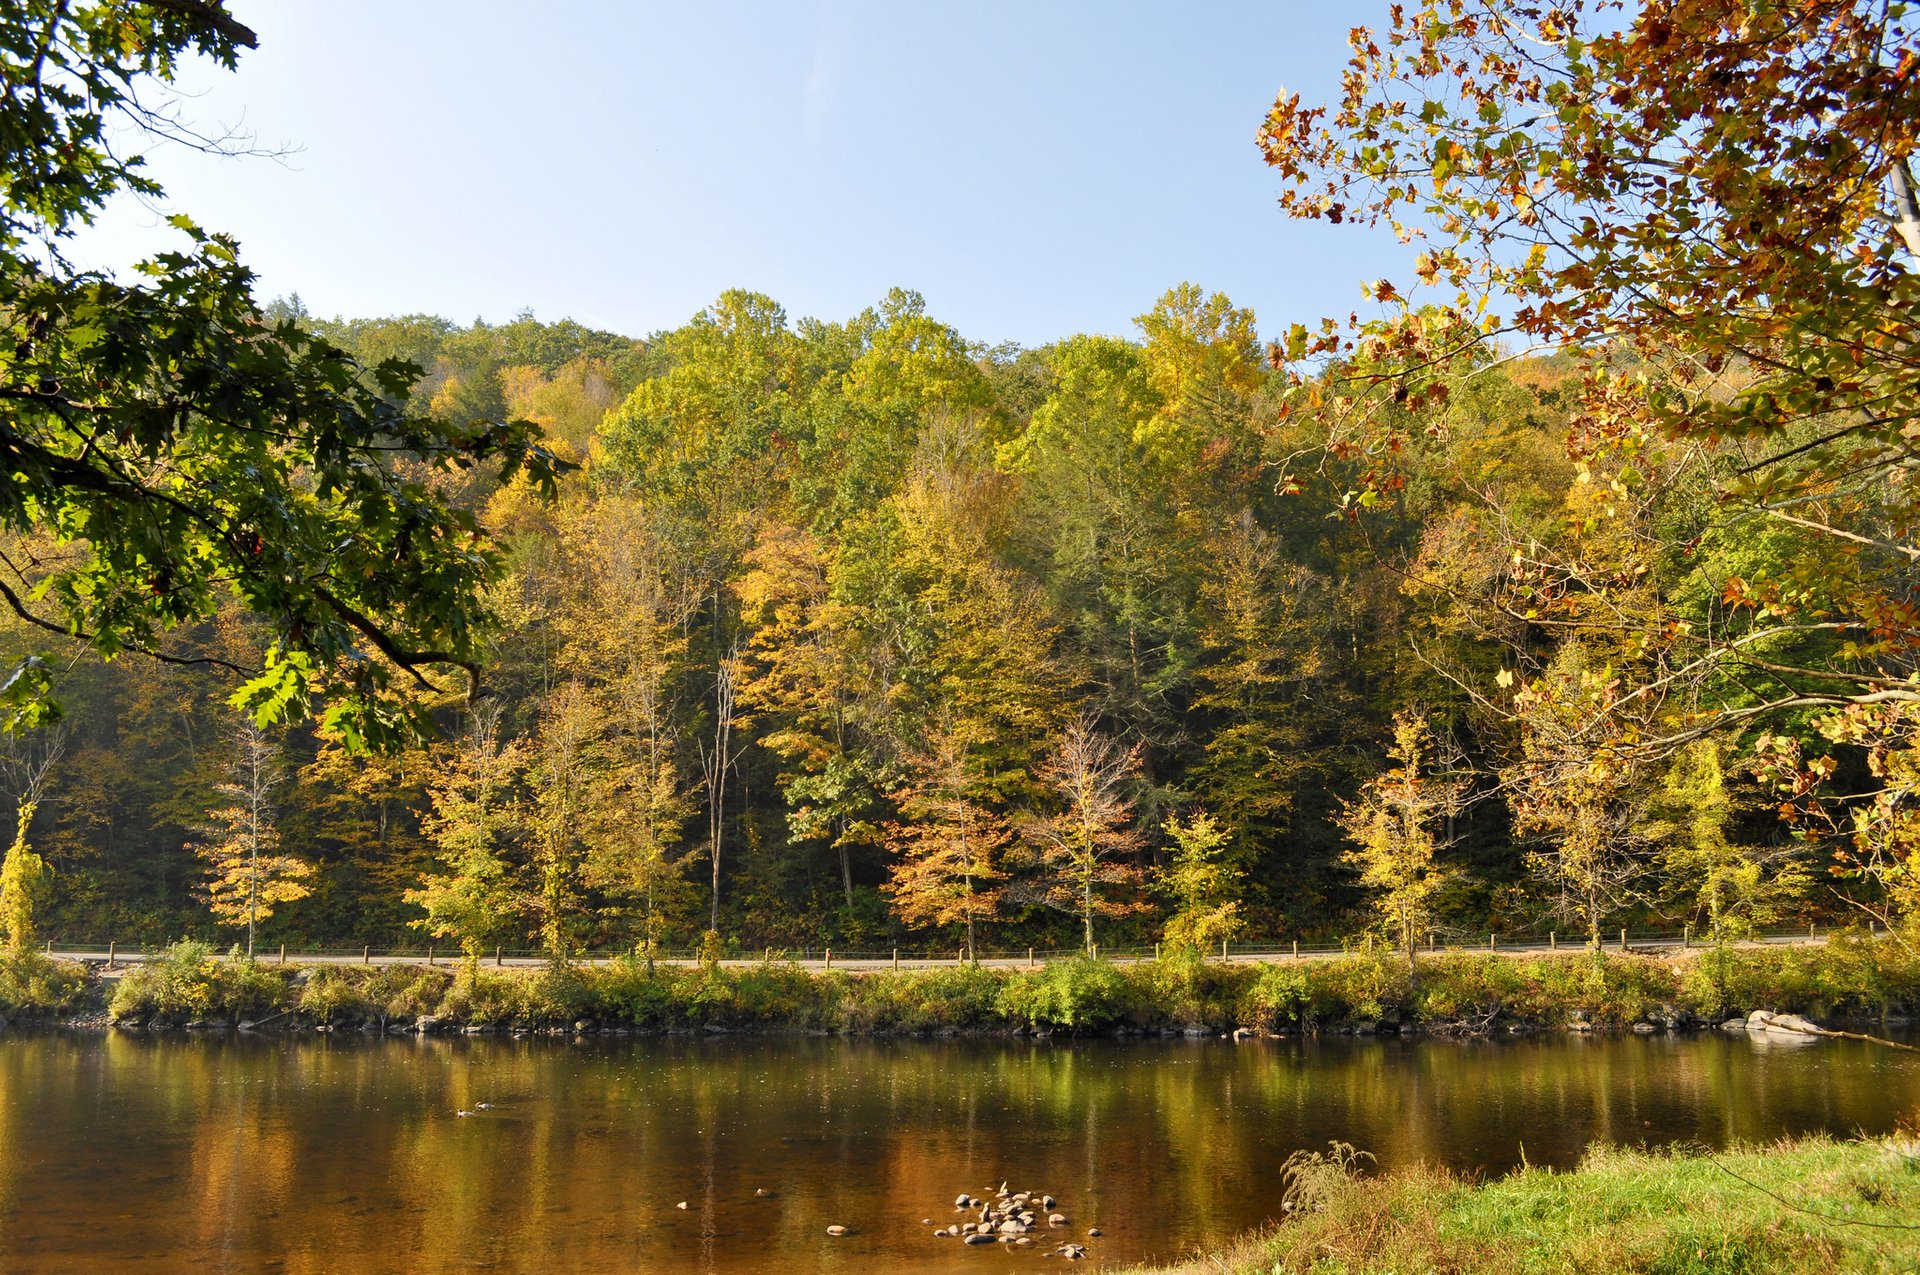 Autumn at Peoples State Forest 2020